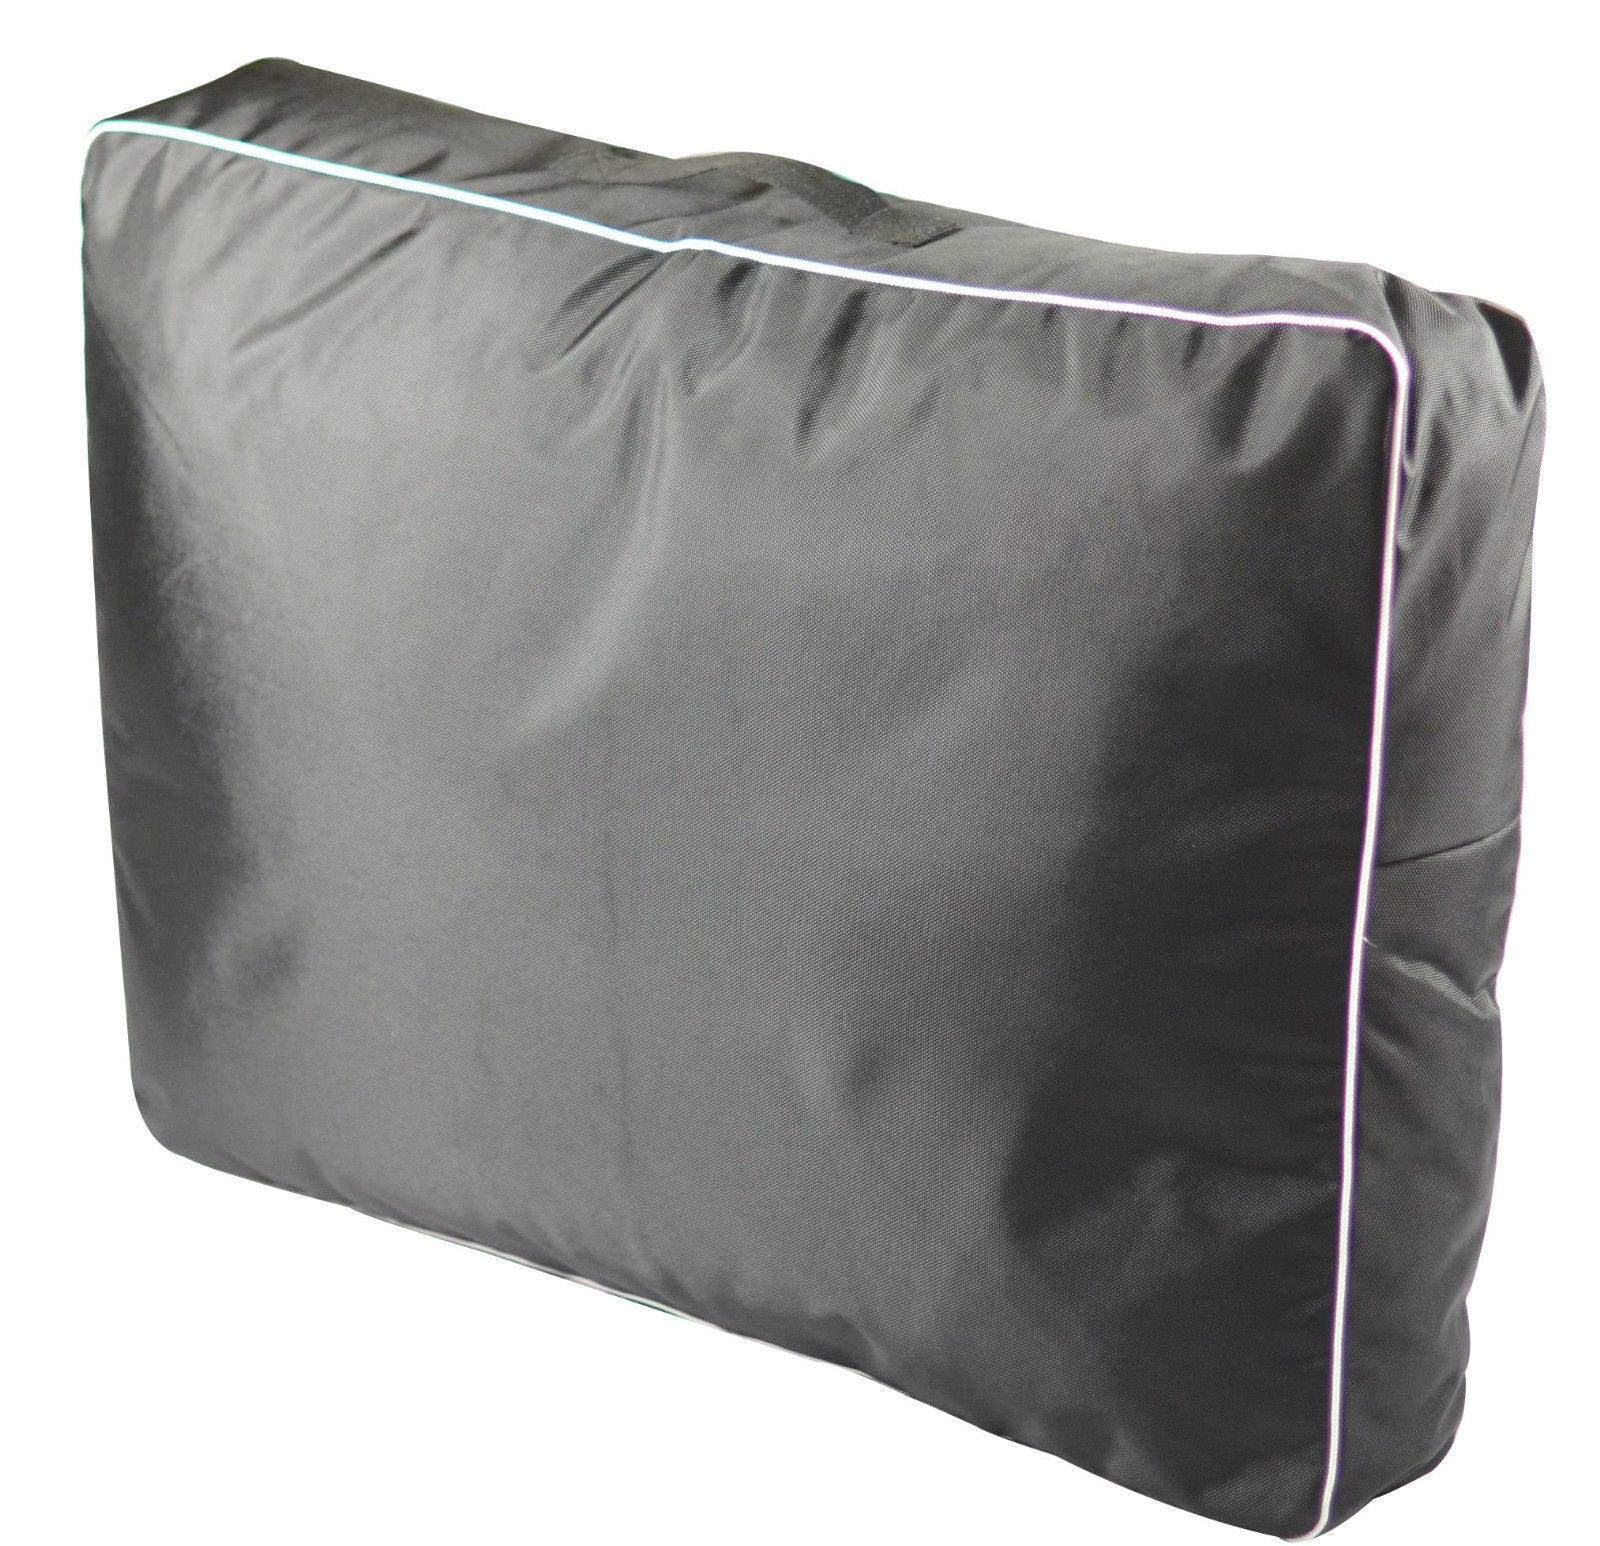 Dog Bed 100x80x10cm Chewing Resistant Soft Cushioned